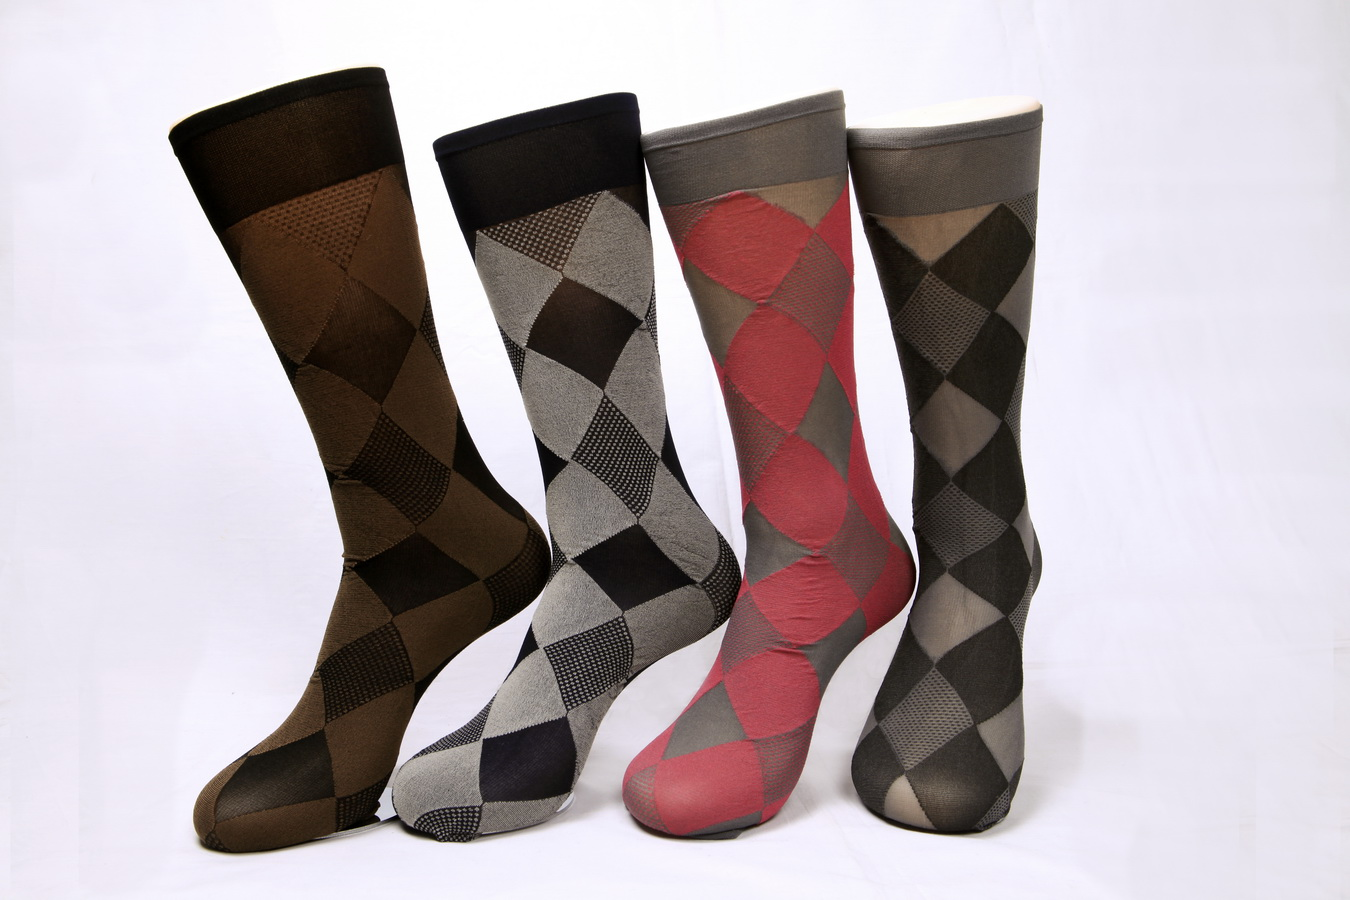 Women's 400N argyle pattern sheer trouser socks